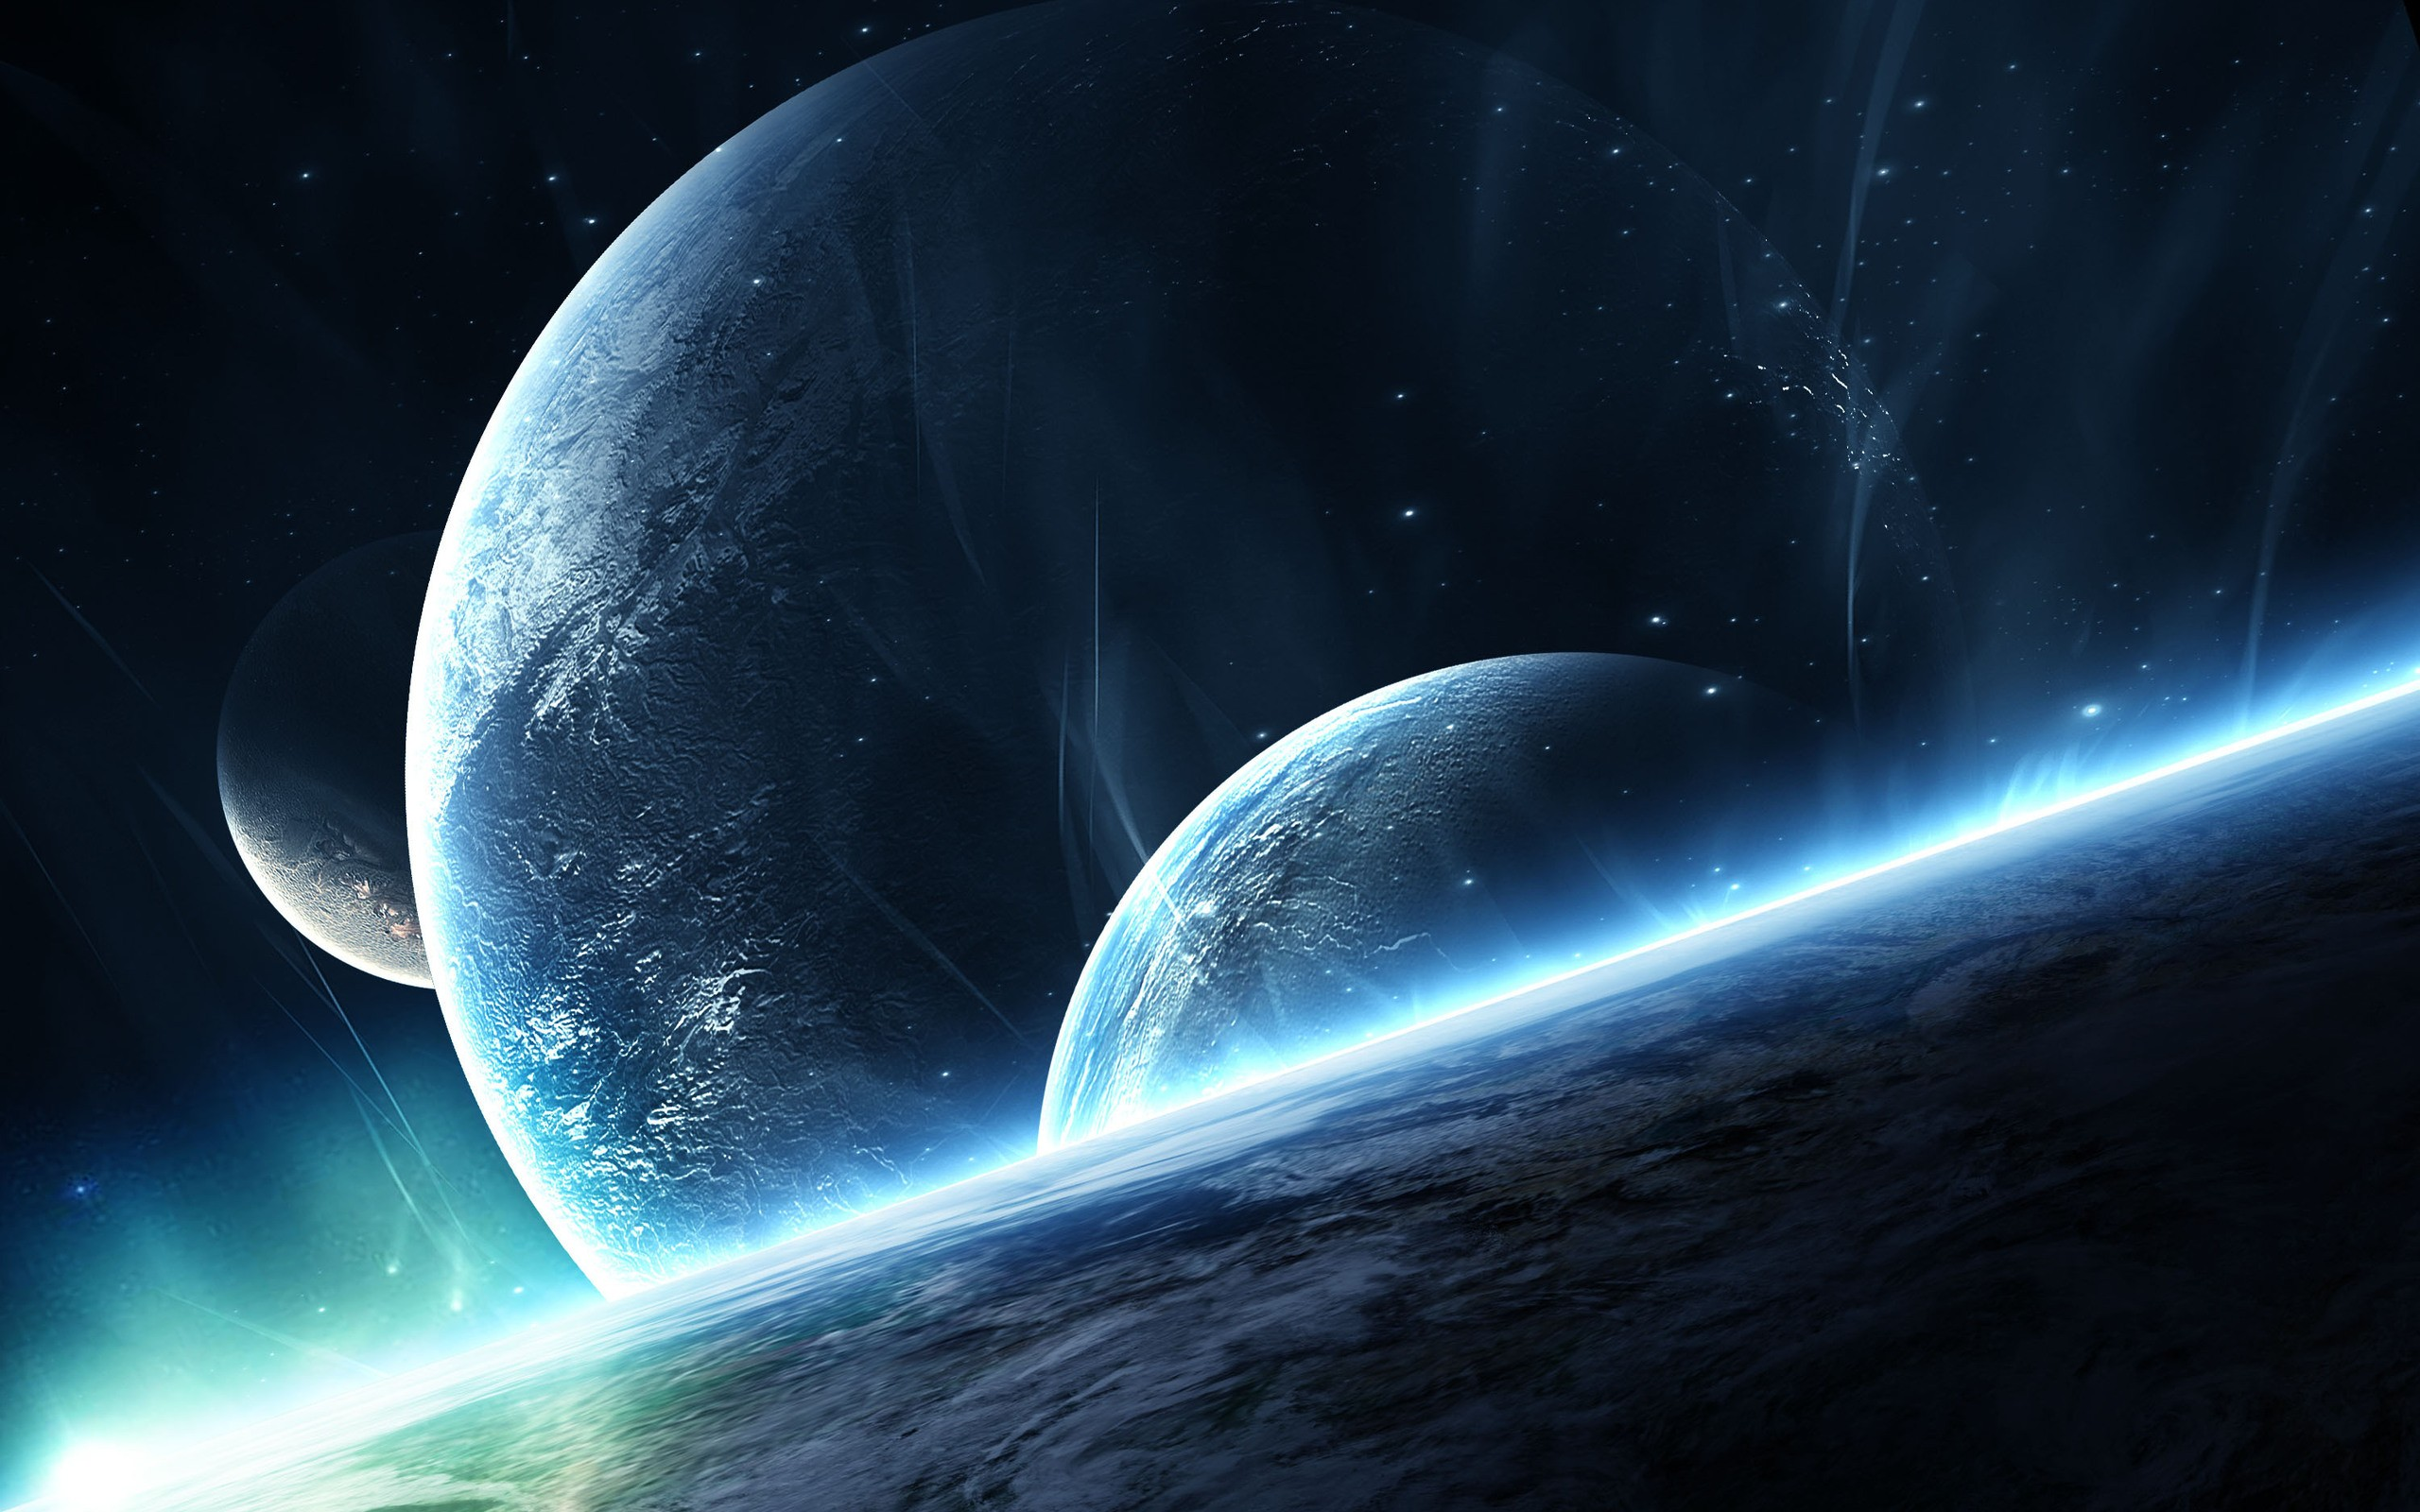 Free download 4k space wallpaper View HD [2560x1600] for ...